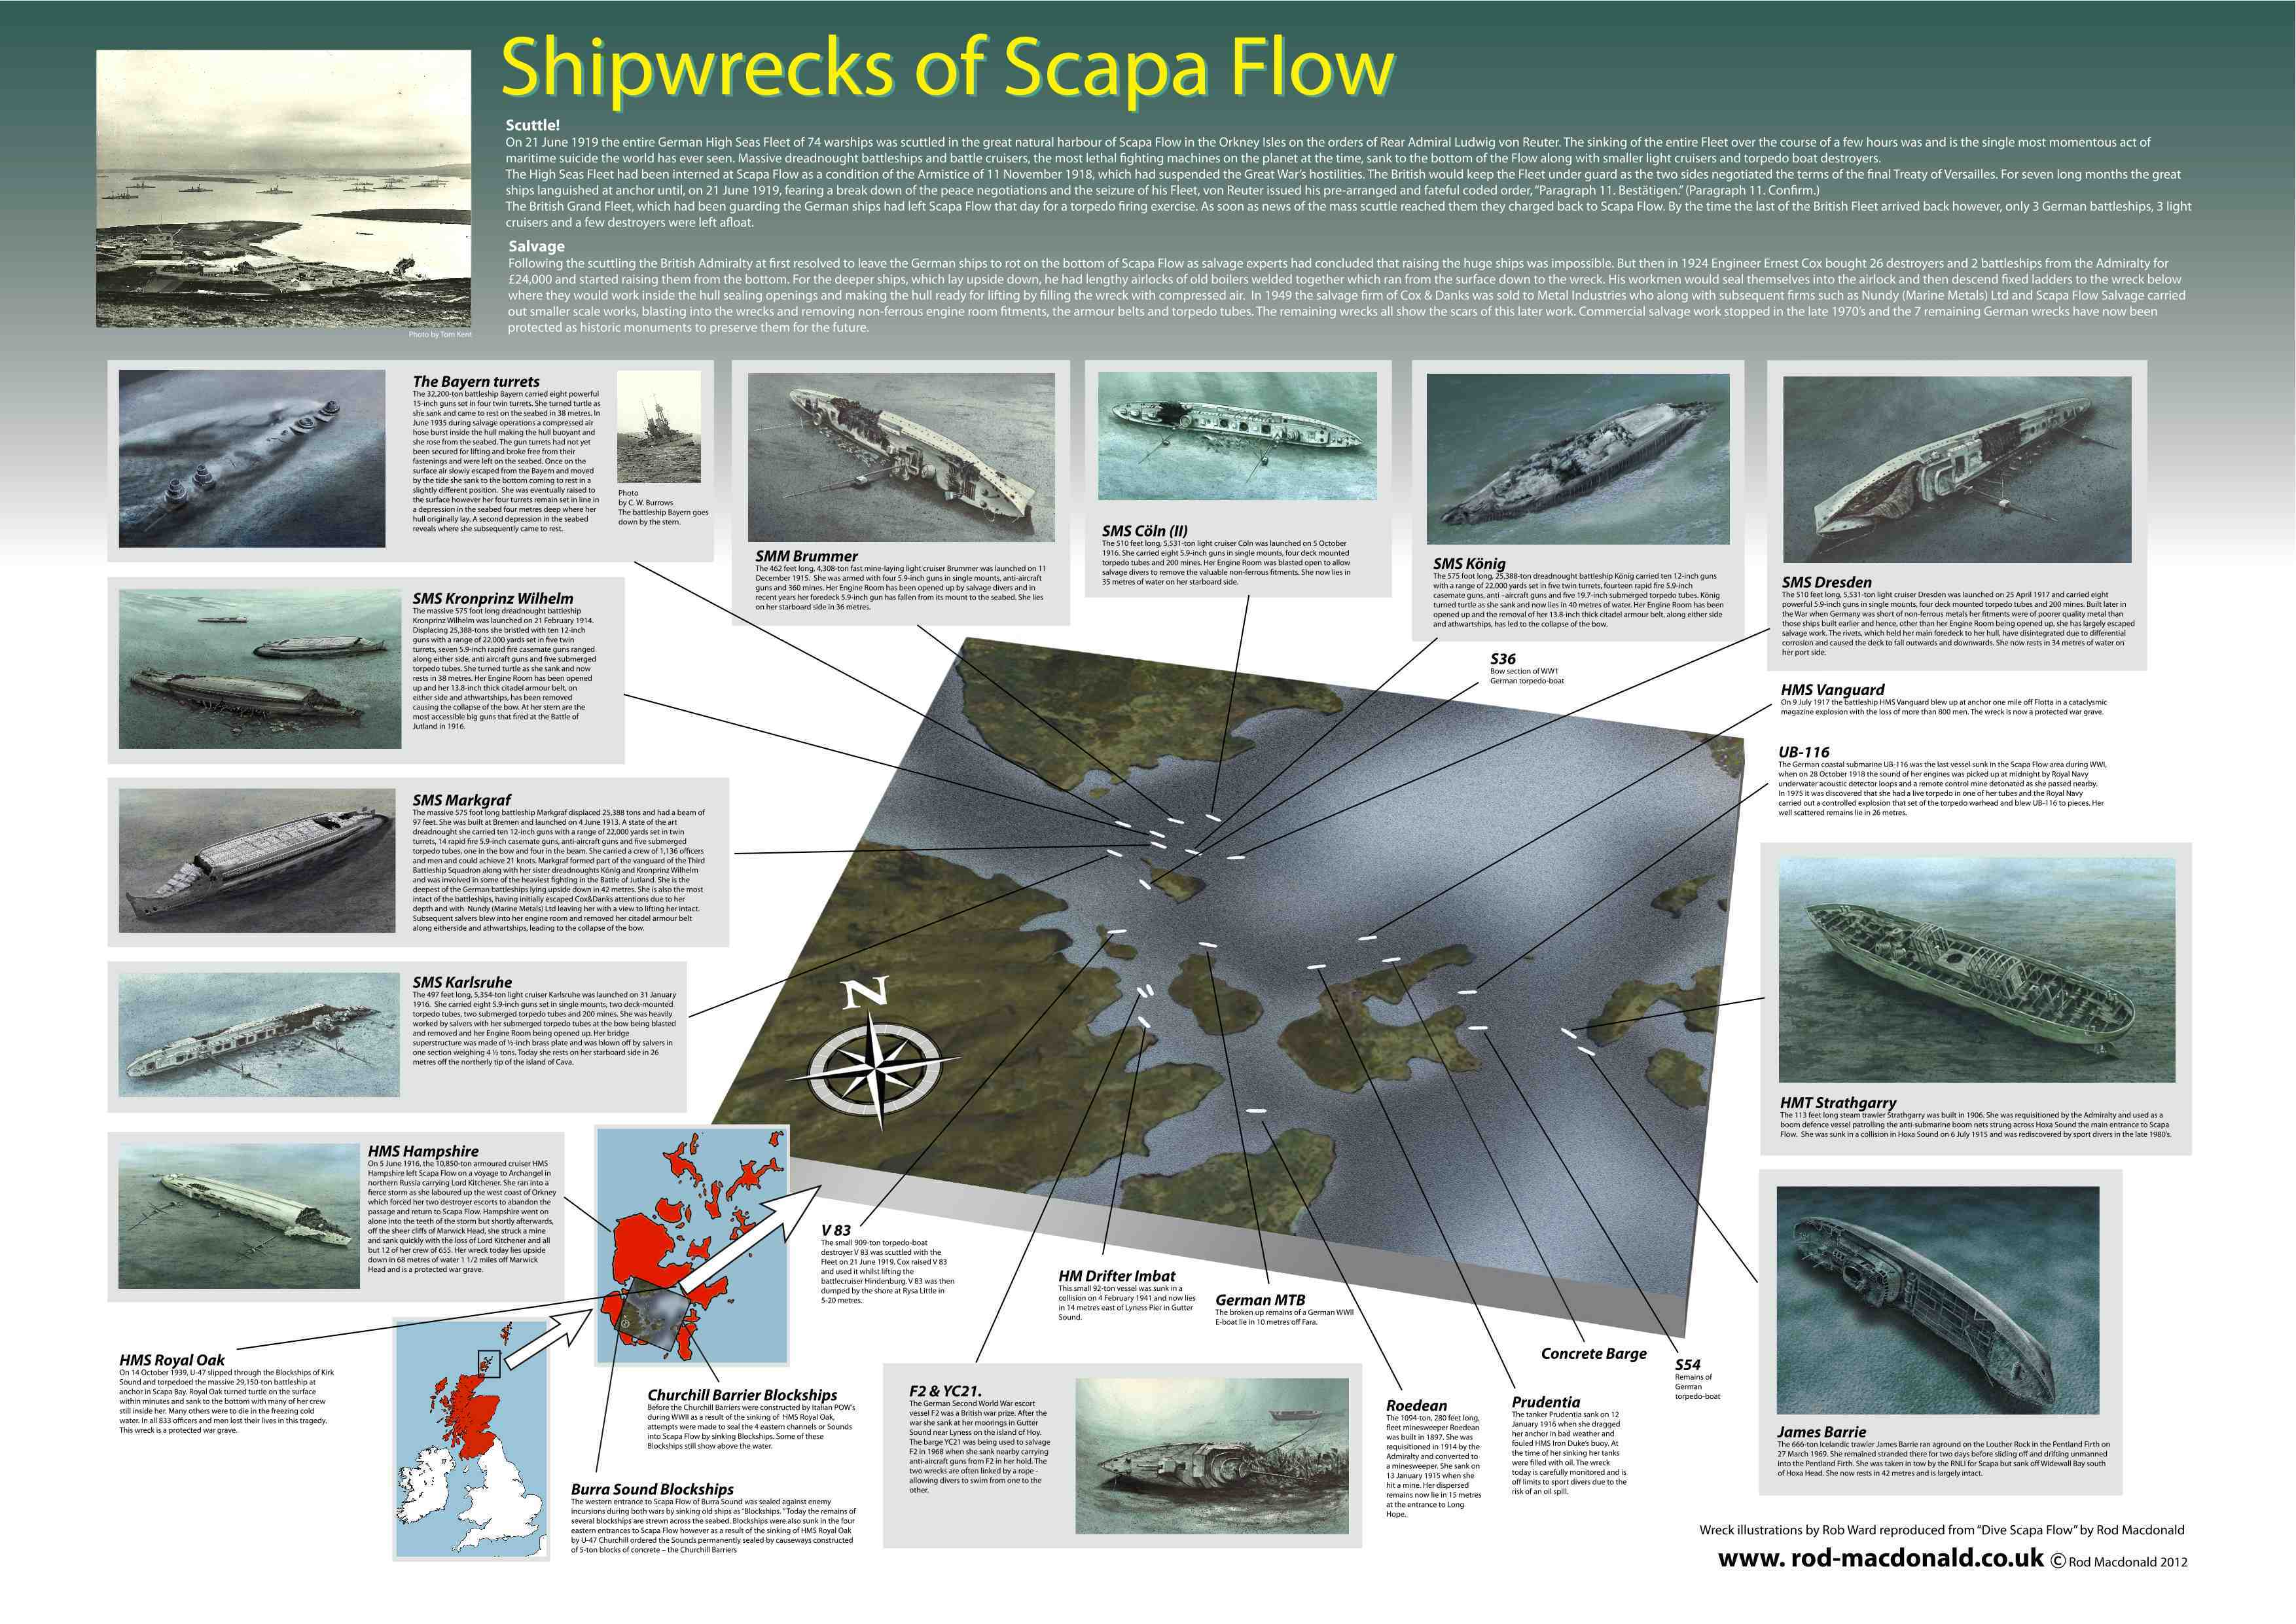 A1 Shipwrecks of Scapa Flow chart - £45 + P&P.